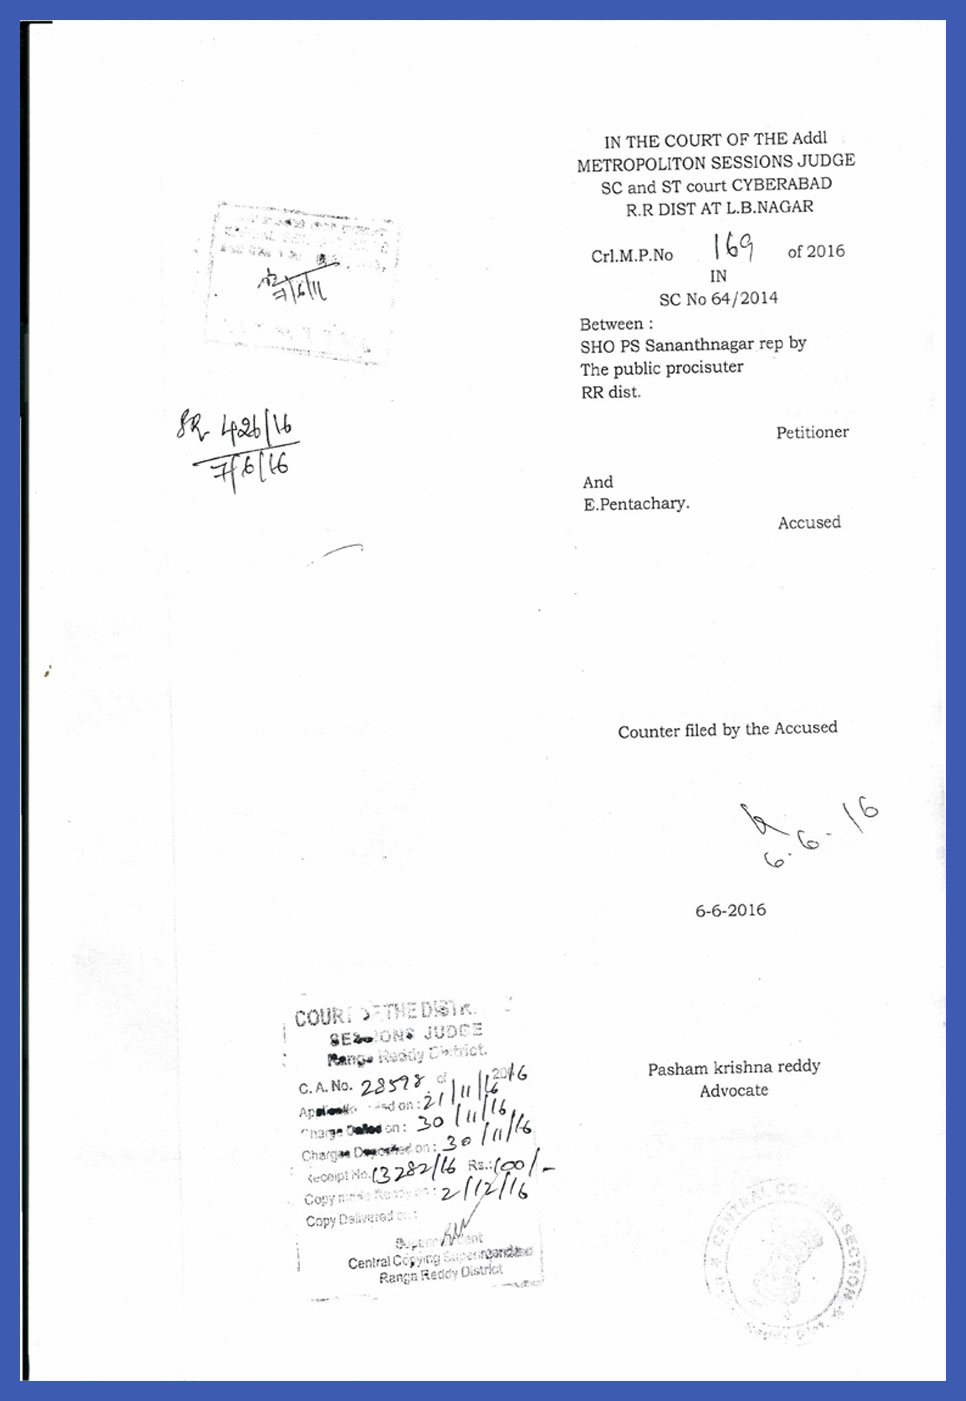 Crl.M.P.169 of 2016 in Filed Counter by the Accused-1